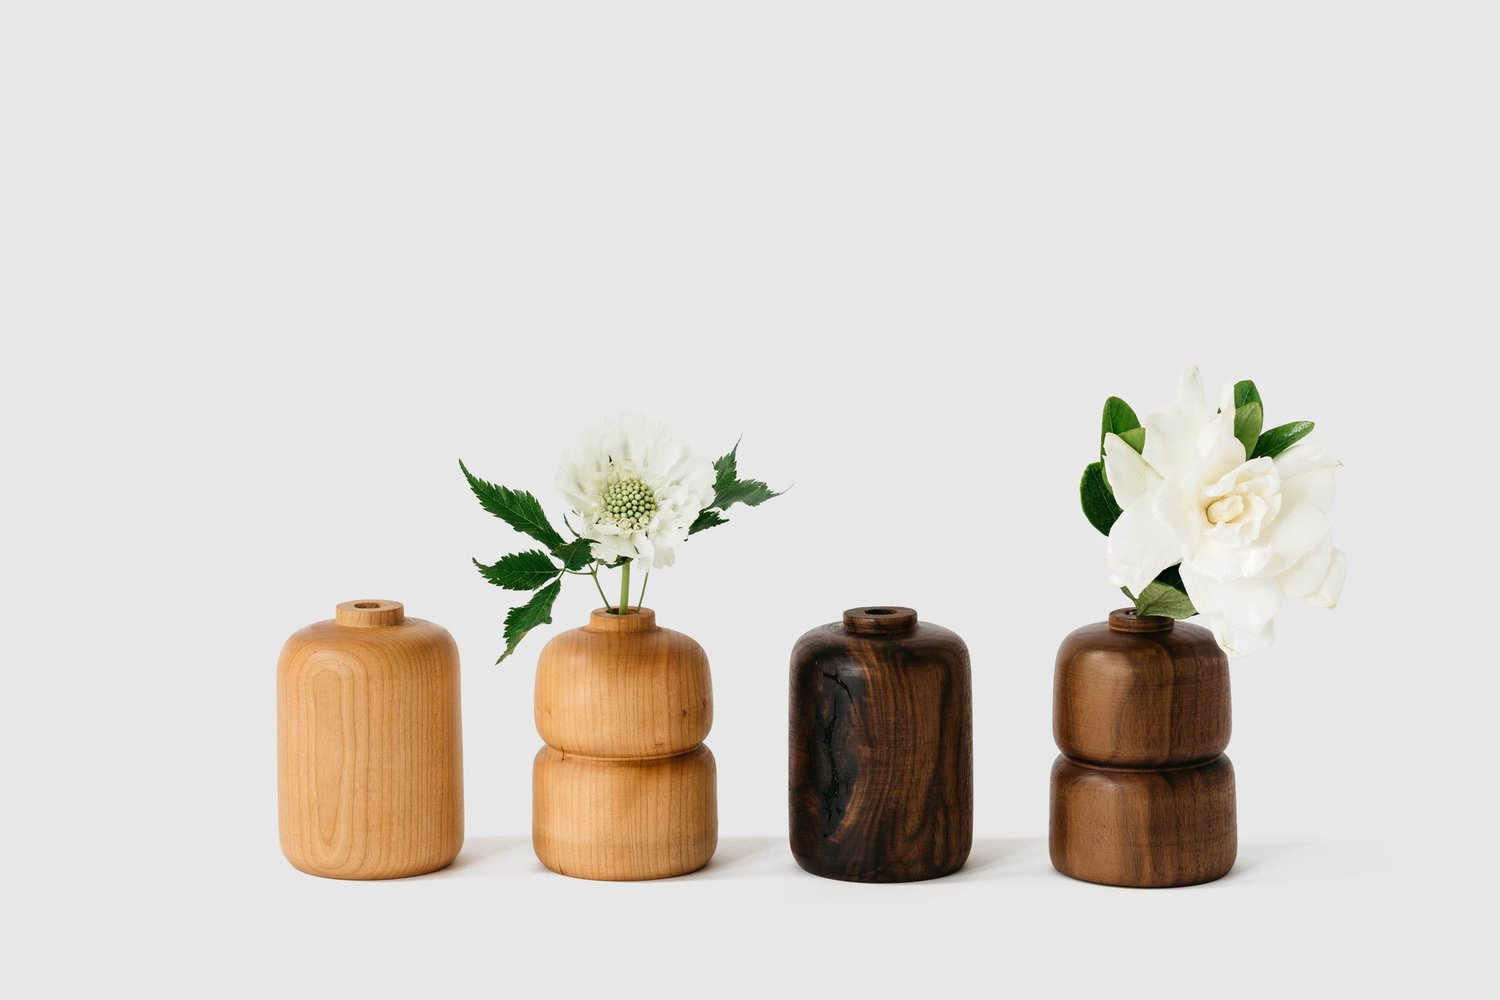 Wood vases  e1a8300 edit